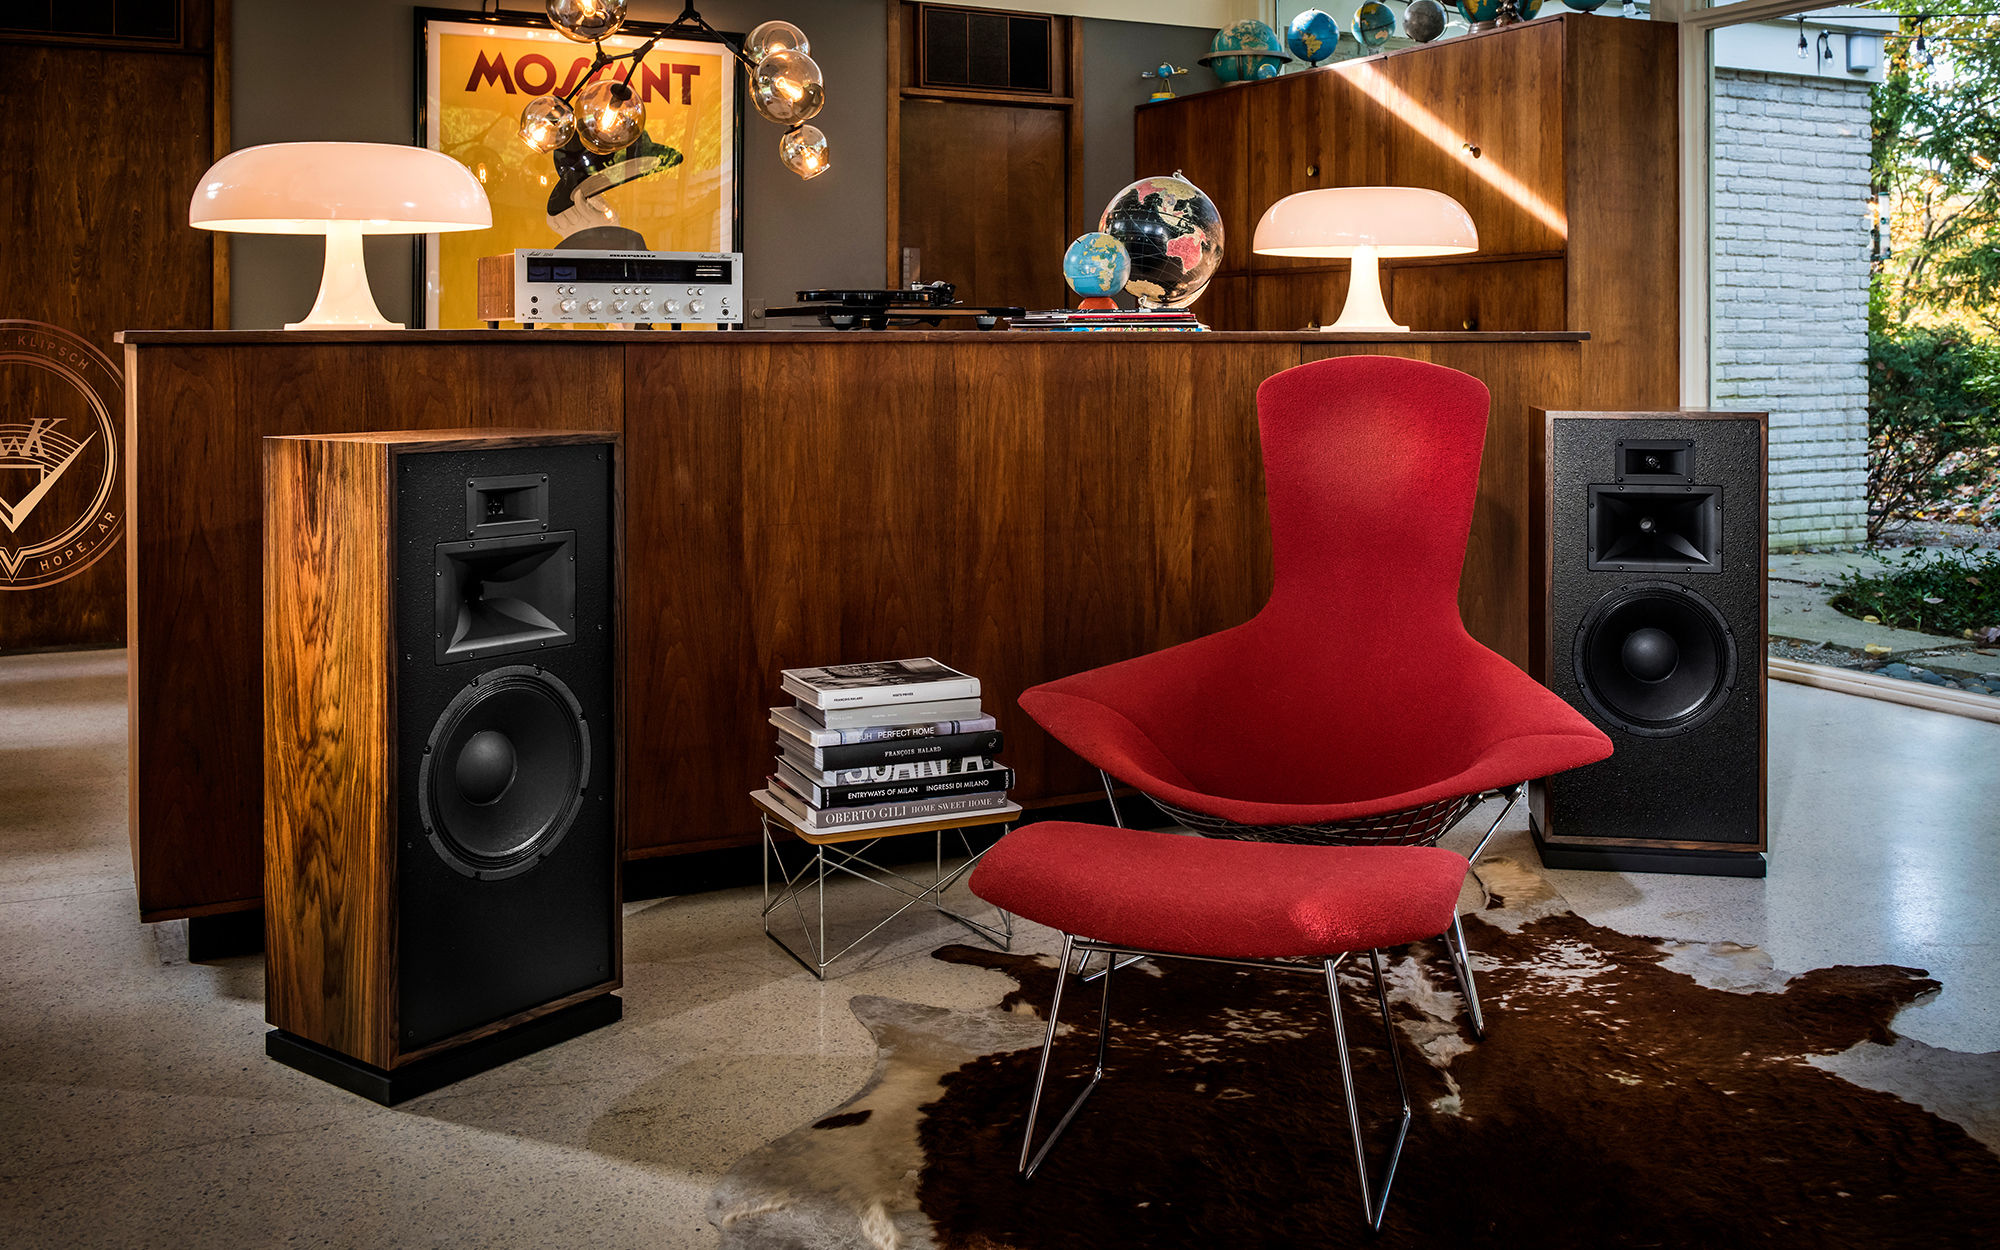 Klipsch Forte III speakers in front of a home wooden bar